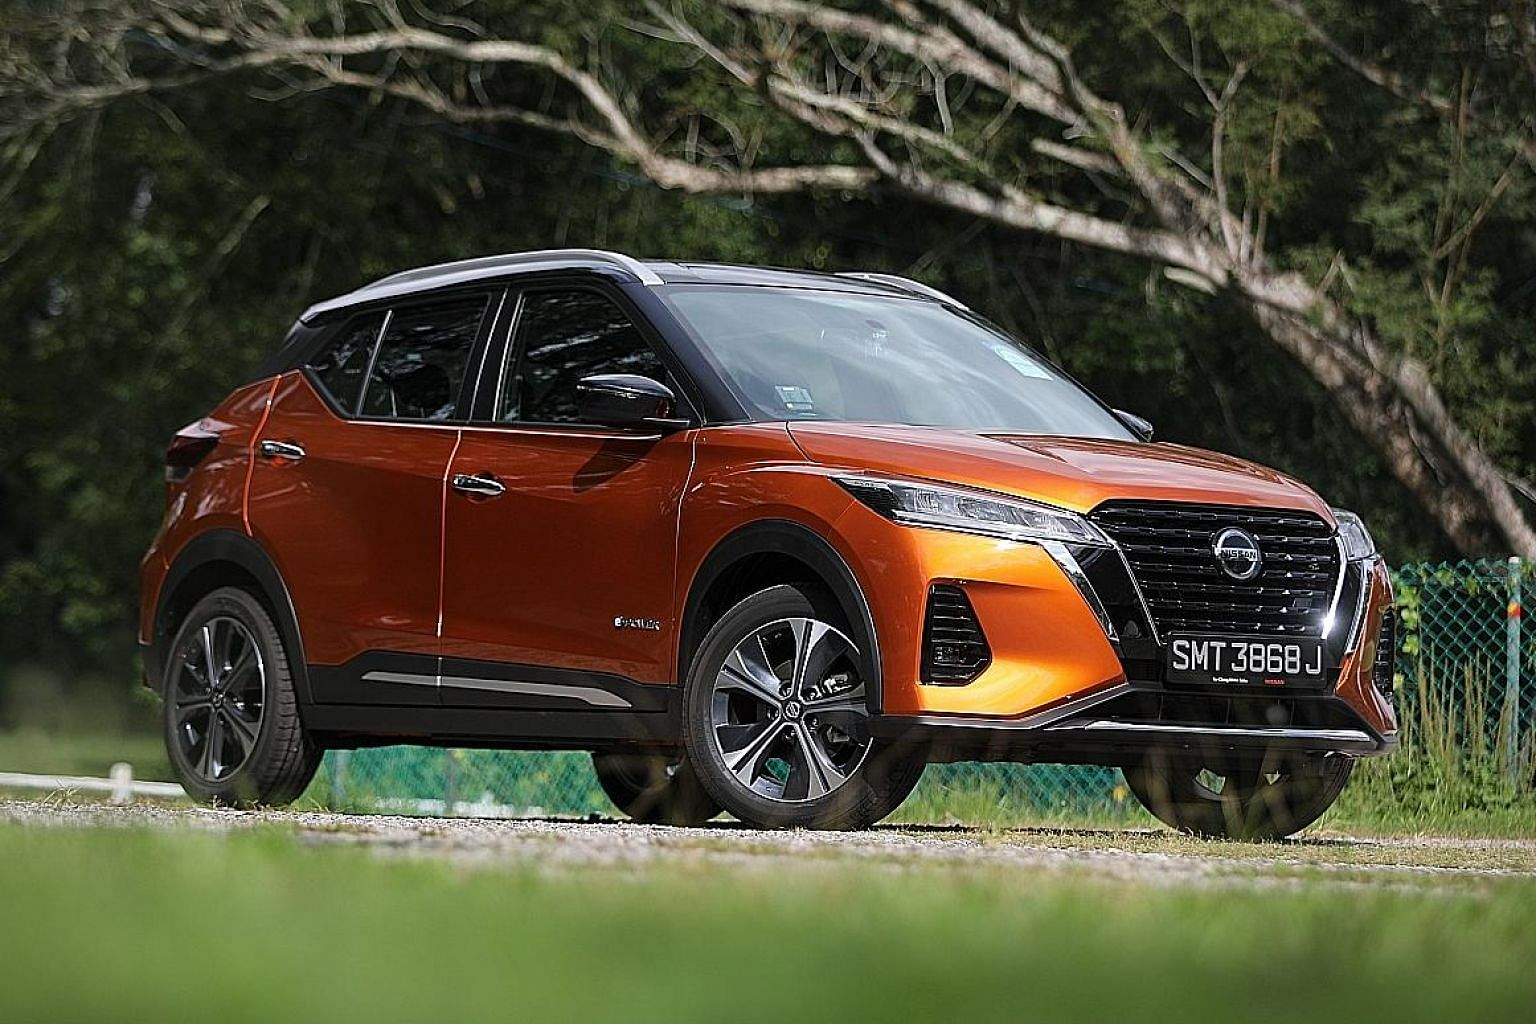 The Nissan Kicks e-Power has a minimalist but smartly laid-out cockpit, and comes across as contemporary and dynamic.